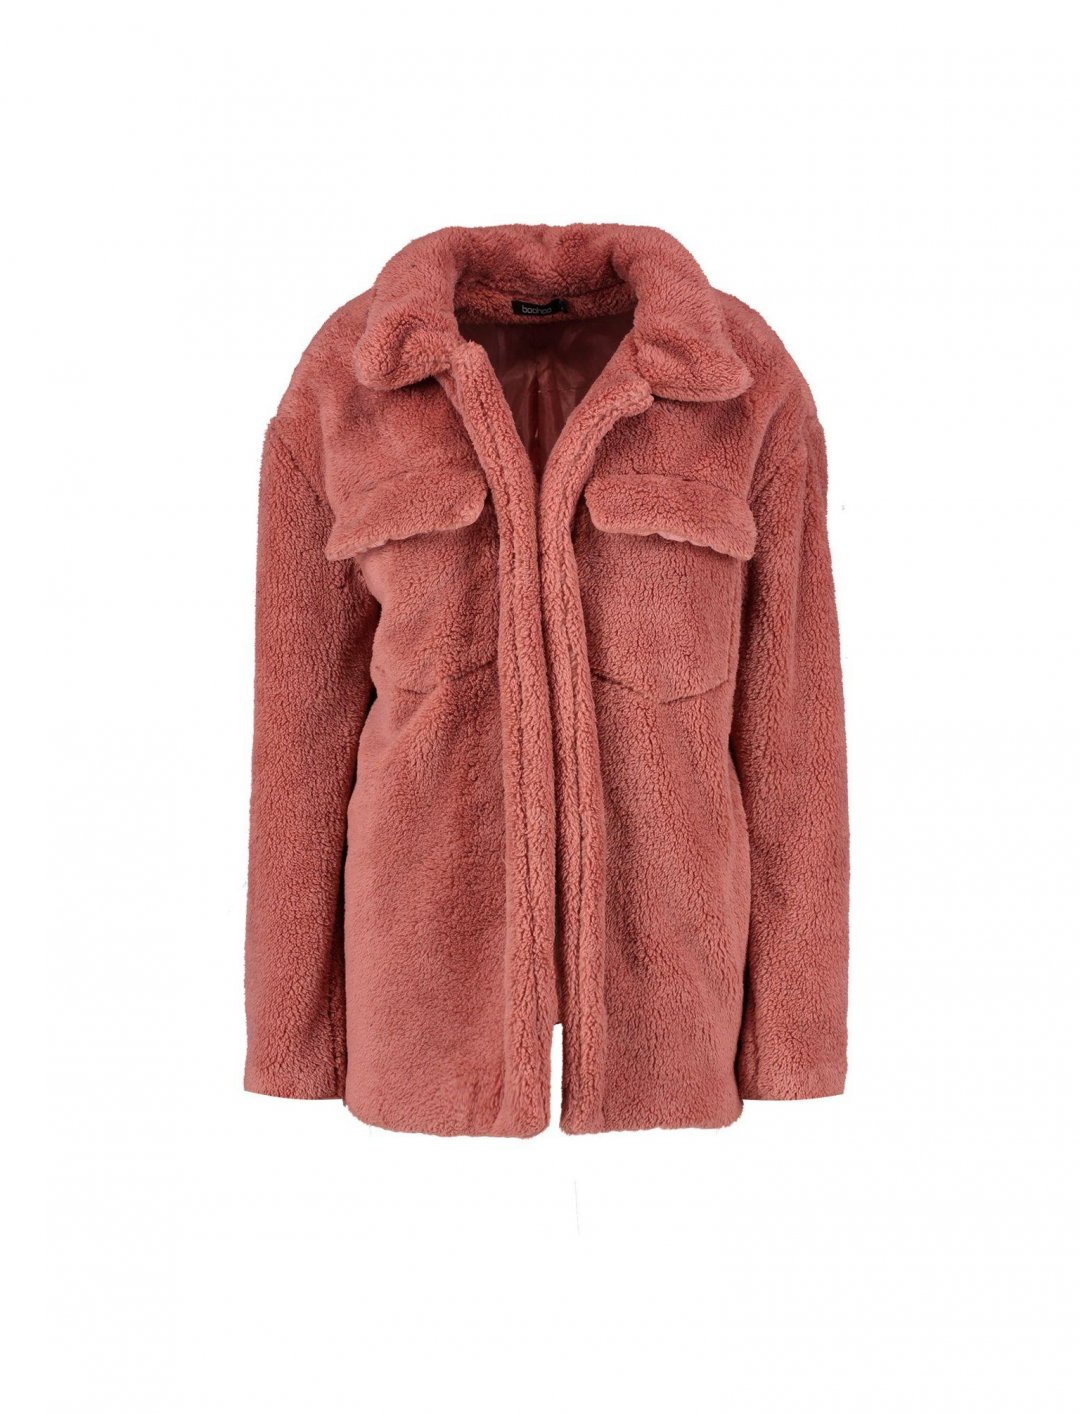 "Teddy Jacket {""id"":5,""product_section_id"":1,""name"":""Clothing"",""order"":5} boohoo"